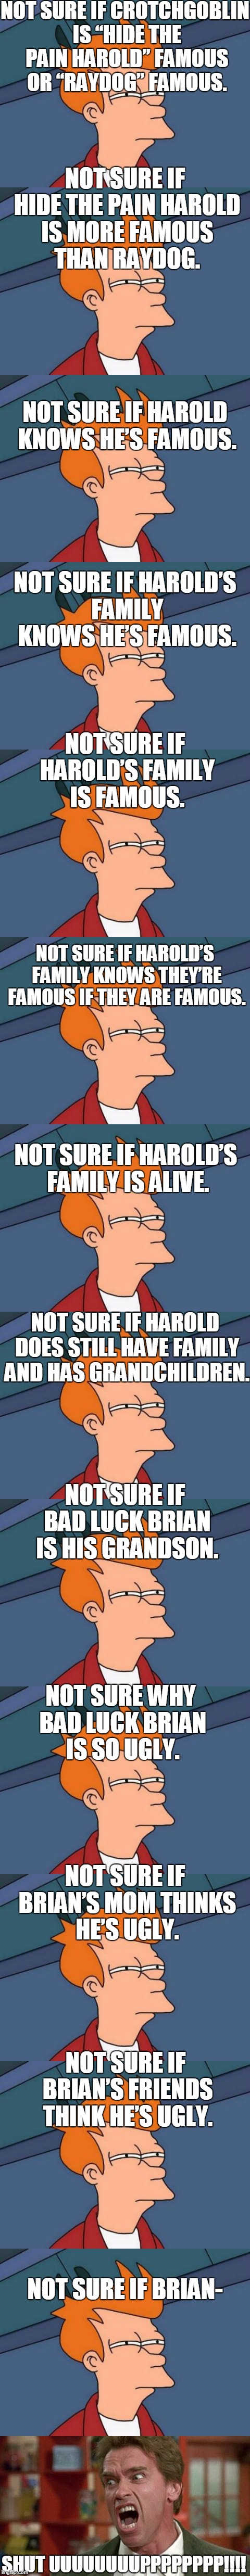 "The Infinity Not Sure If's from Fry. | NOT SURE IF CROTCHGOBLIN IS ""HIDE THE PAIN HAROLD"" FAMOUS OR ""RAYDOG"" FAMOUS. NOT SURE IF HIDE THE PAIN HAROLD IS MORE FAMOUS THAN RAYDOG. N 